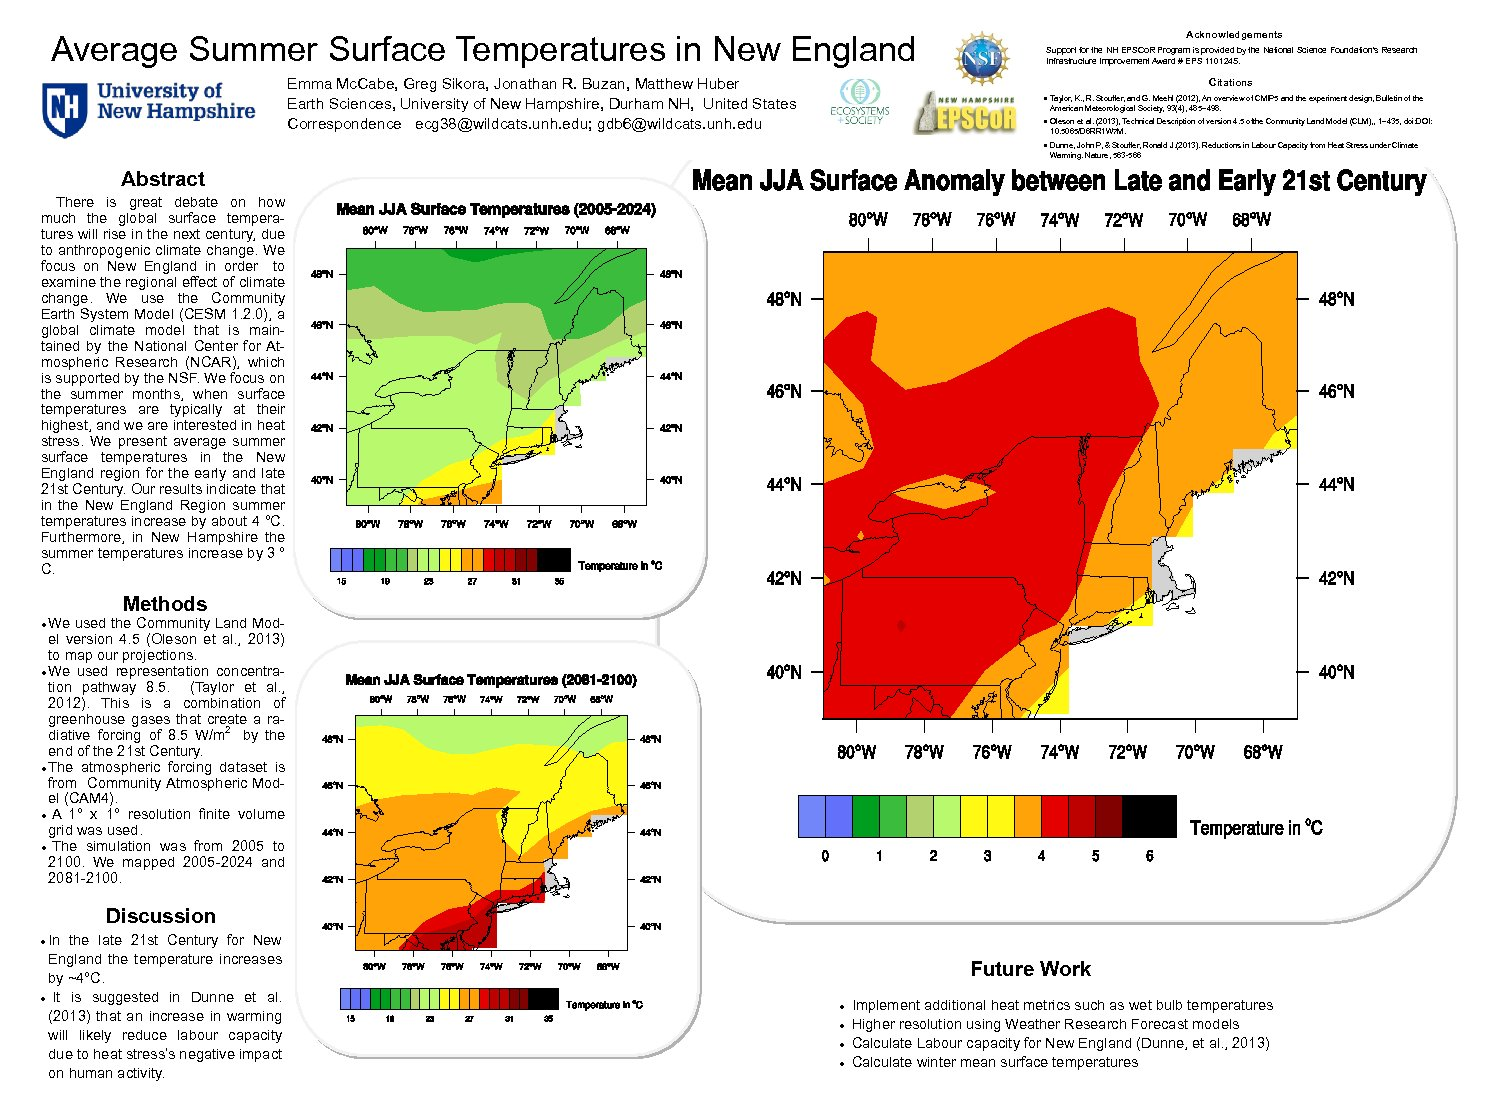 Average Summer Surface Temperatures In New England by ecg38